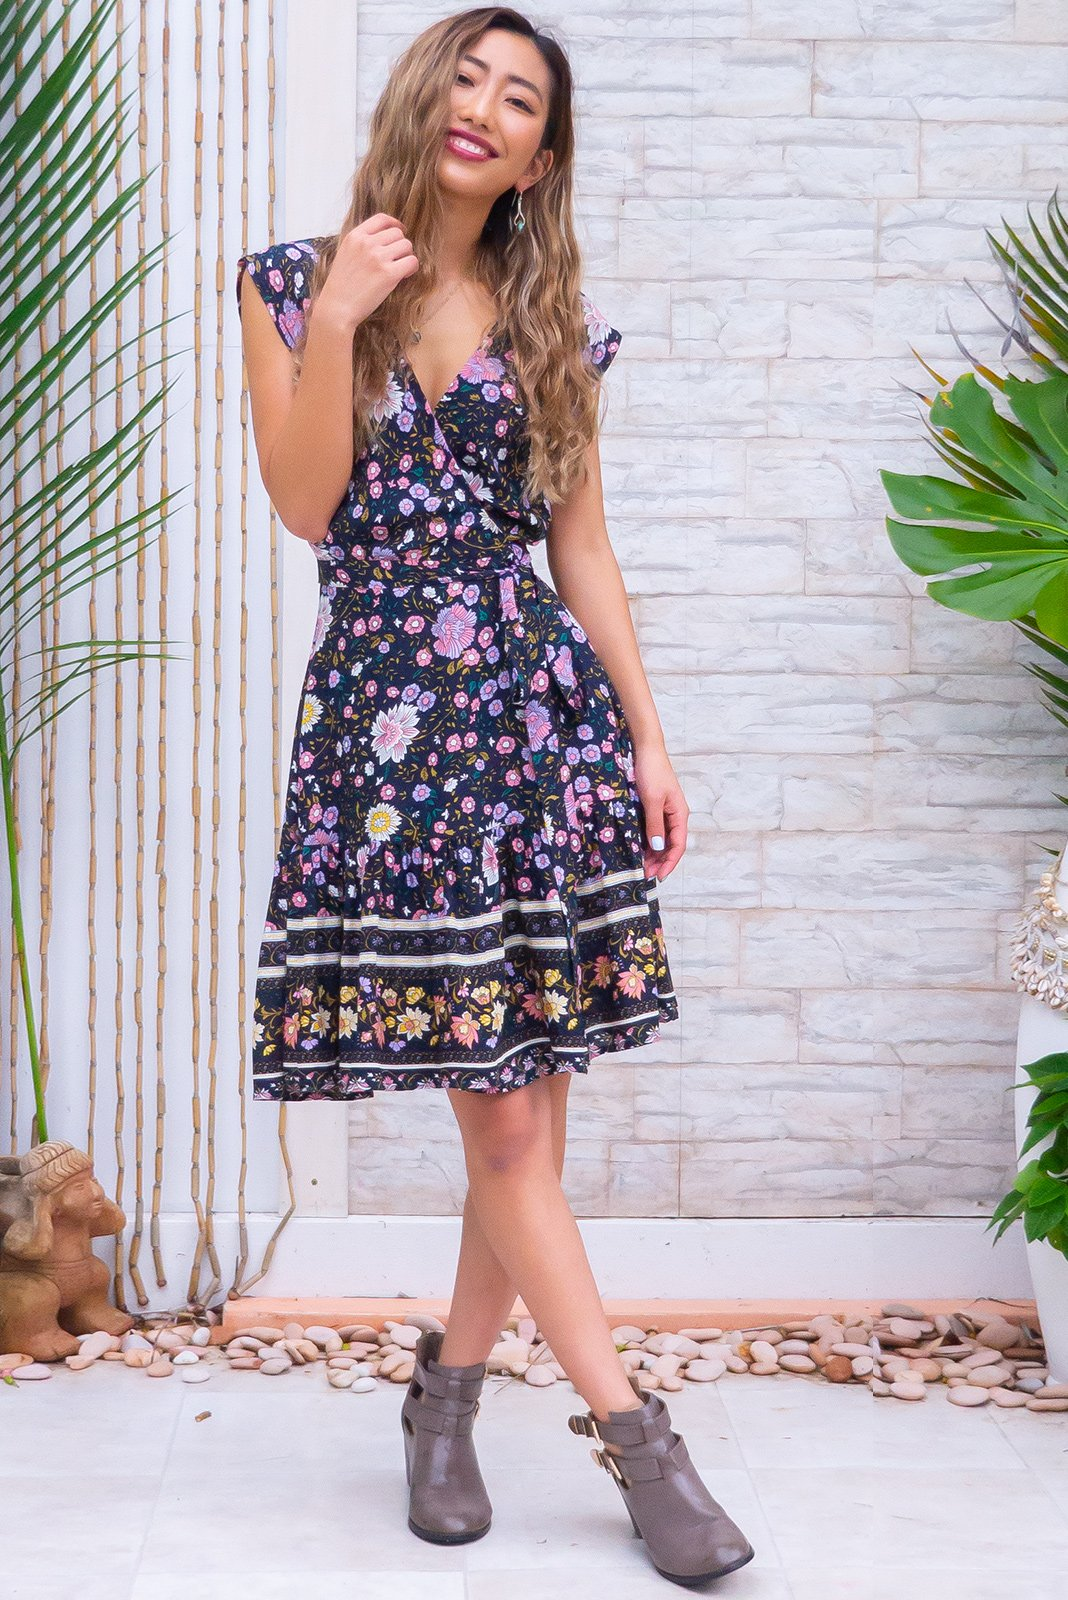 Sea Breeze Nantucket Ink Wrap Dress is a flirty frock having short sleeves with removable ties, flattering adjustable wrap design, elasticated waist band at the back, border print, frill hem, dark ink base with bohemian floral folk print in white, lavender, baby pink, yellow and greens in woven 100% rayon.